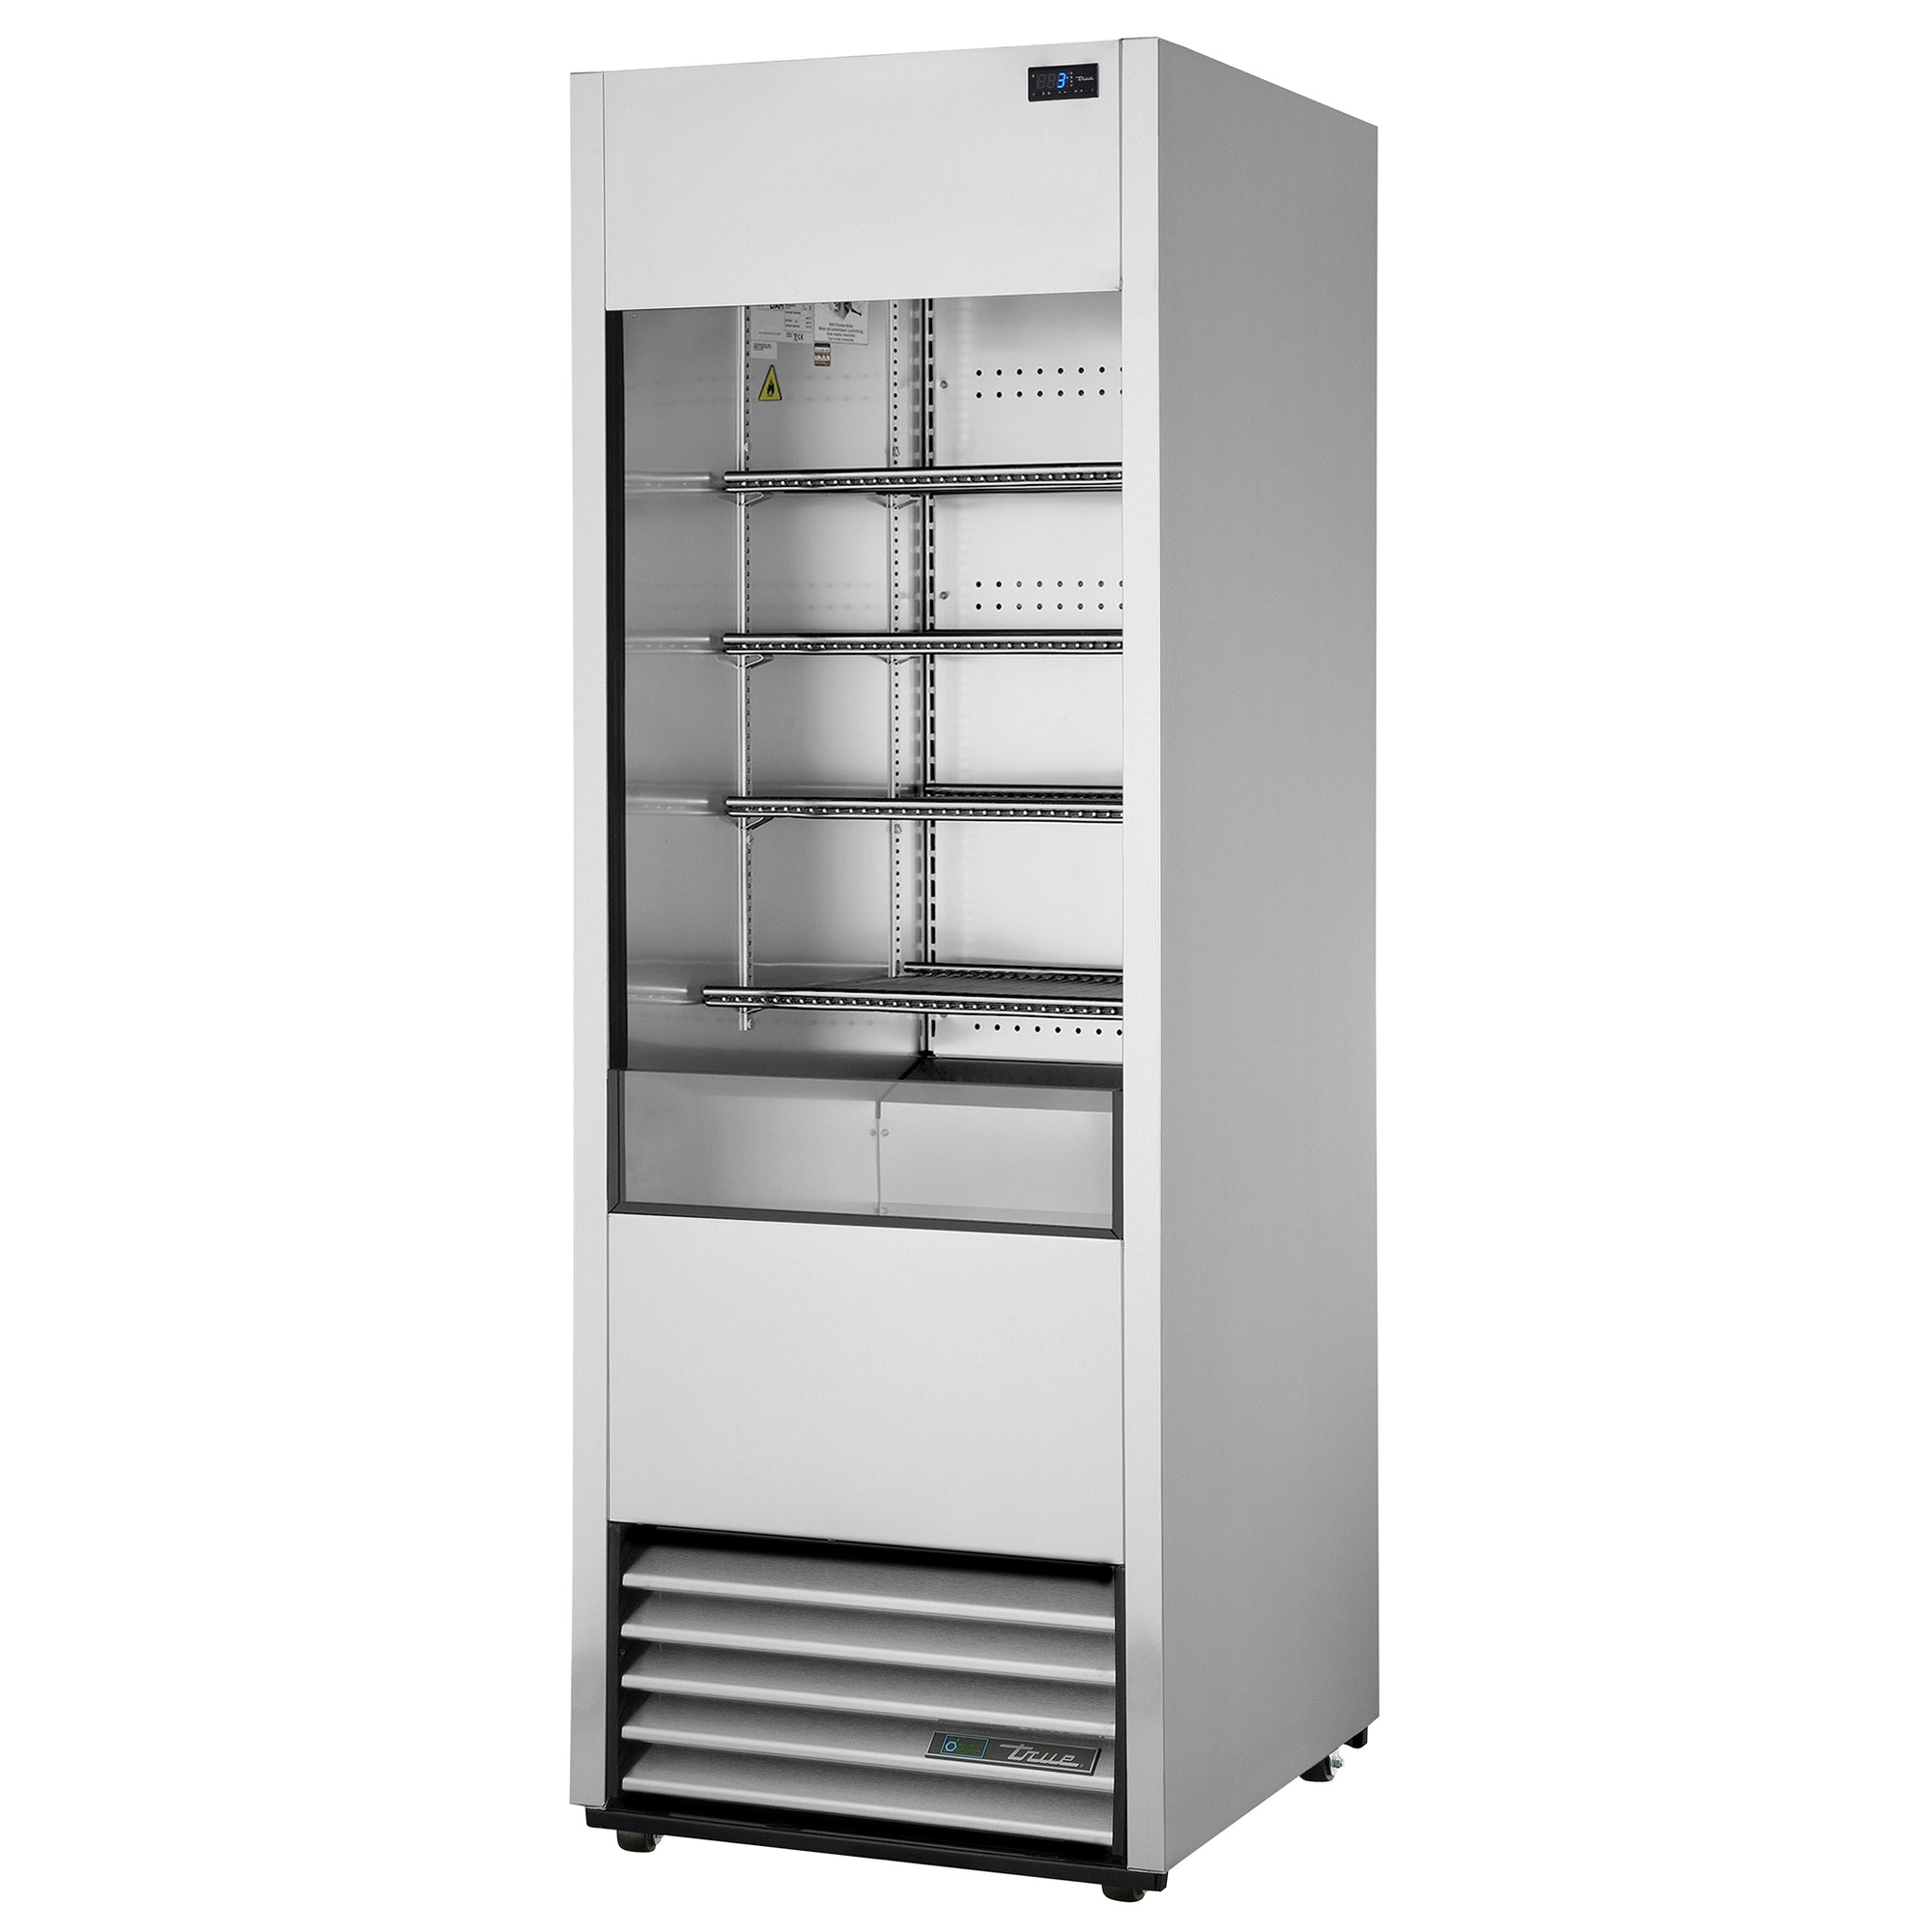 Open Air Curtain Refrigerator - TAC-27K-HC-LD